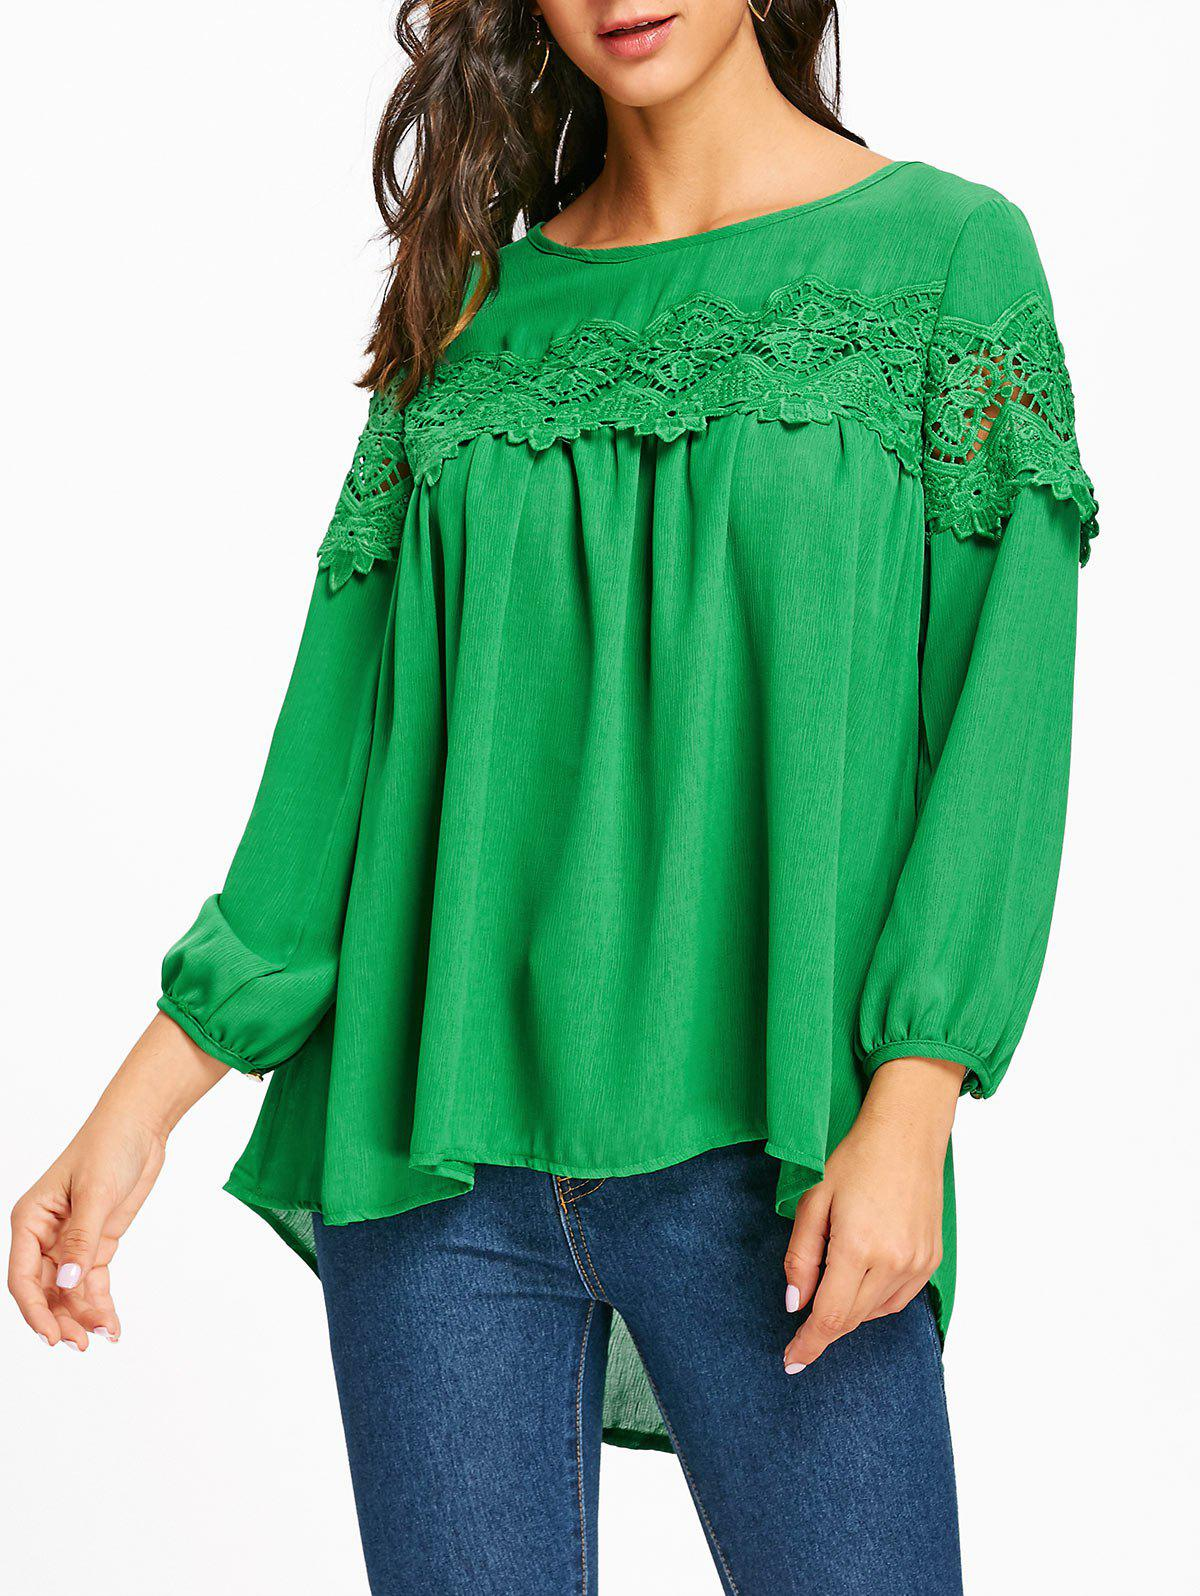 Crochet Lace Insert High Low Blouse - GREEN L